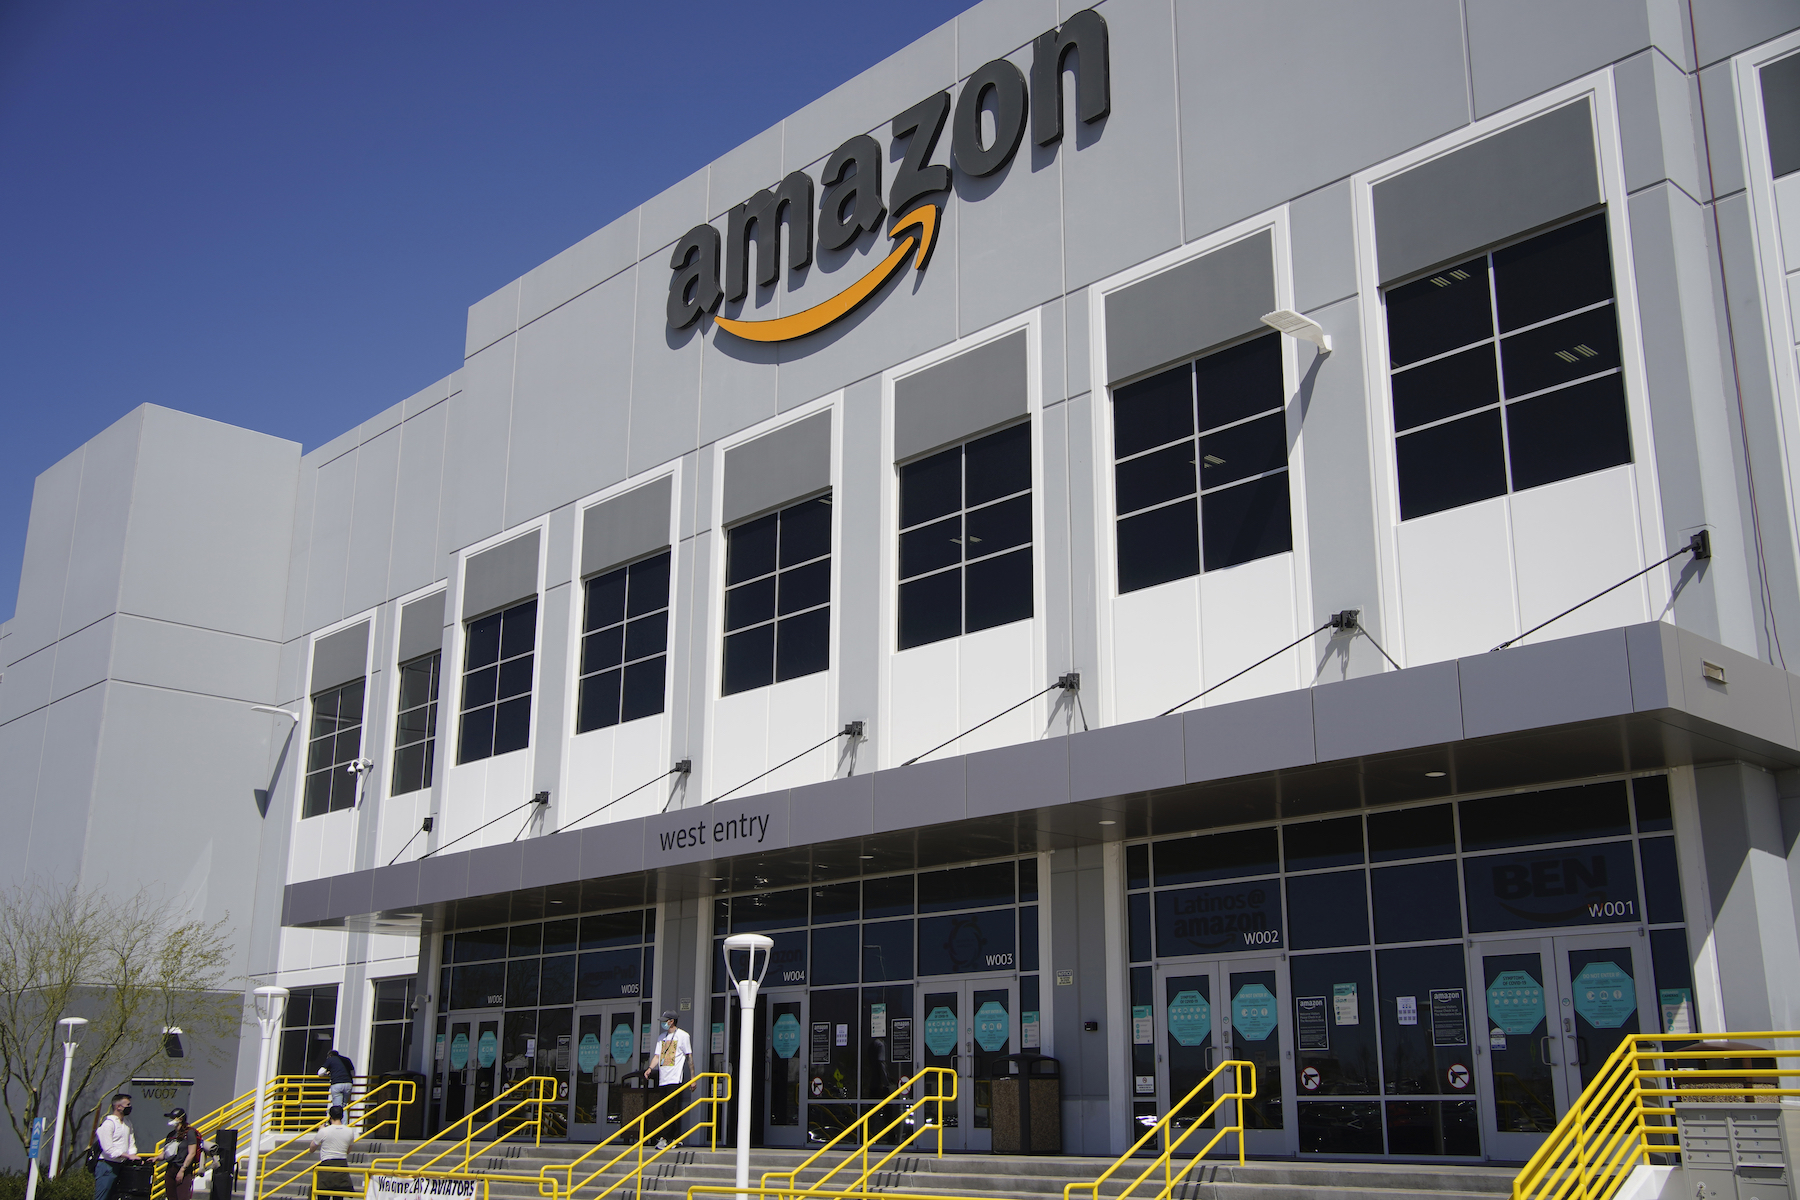 Wall Street Journal's deep dive into Amazon's reported department store launch reveals a fashion-focused and tech-driven experience.